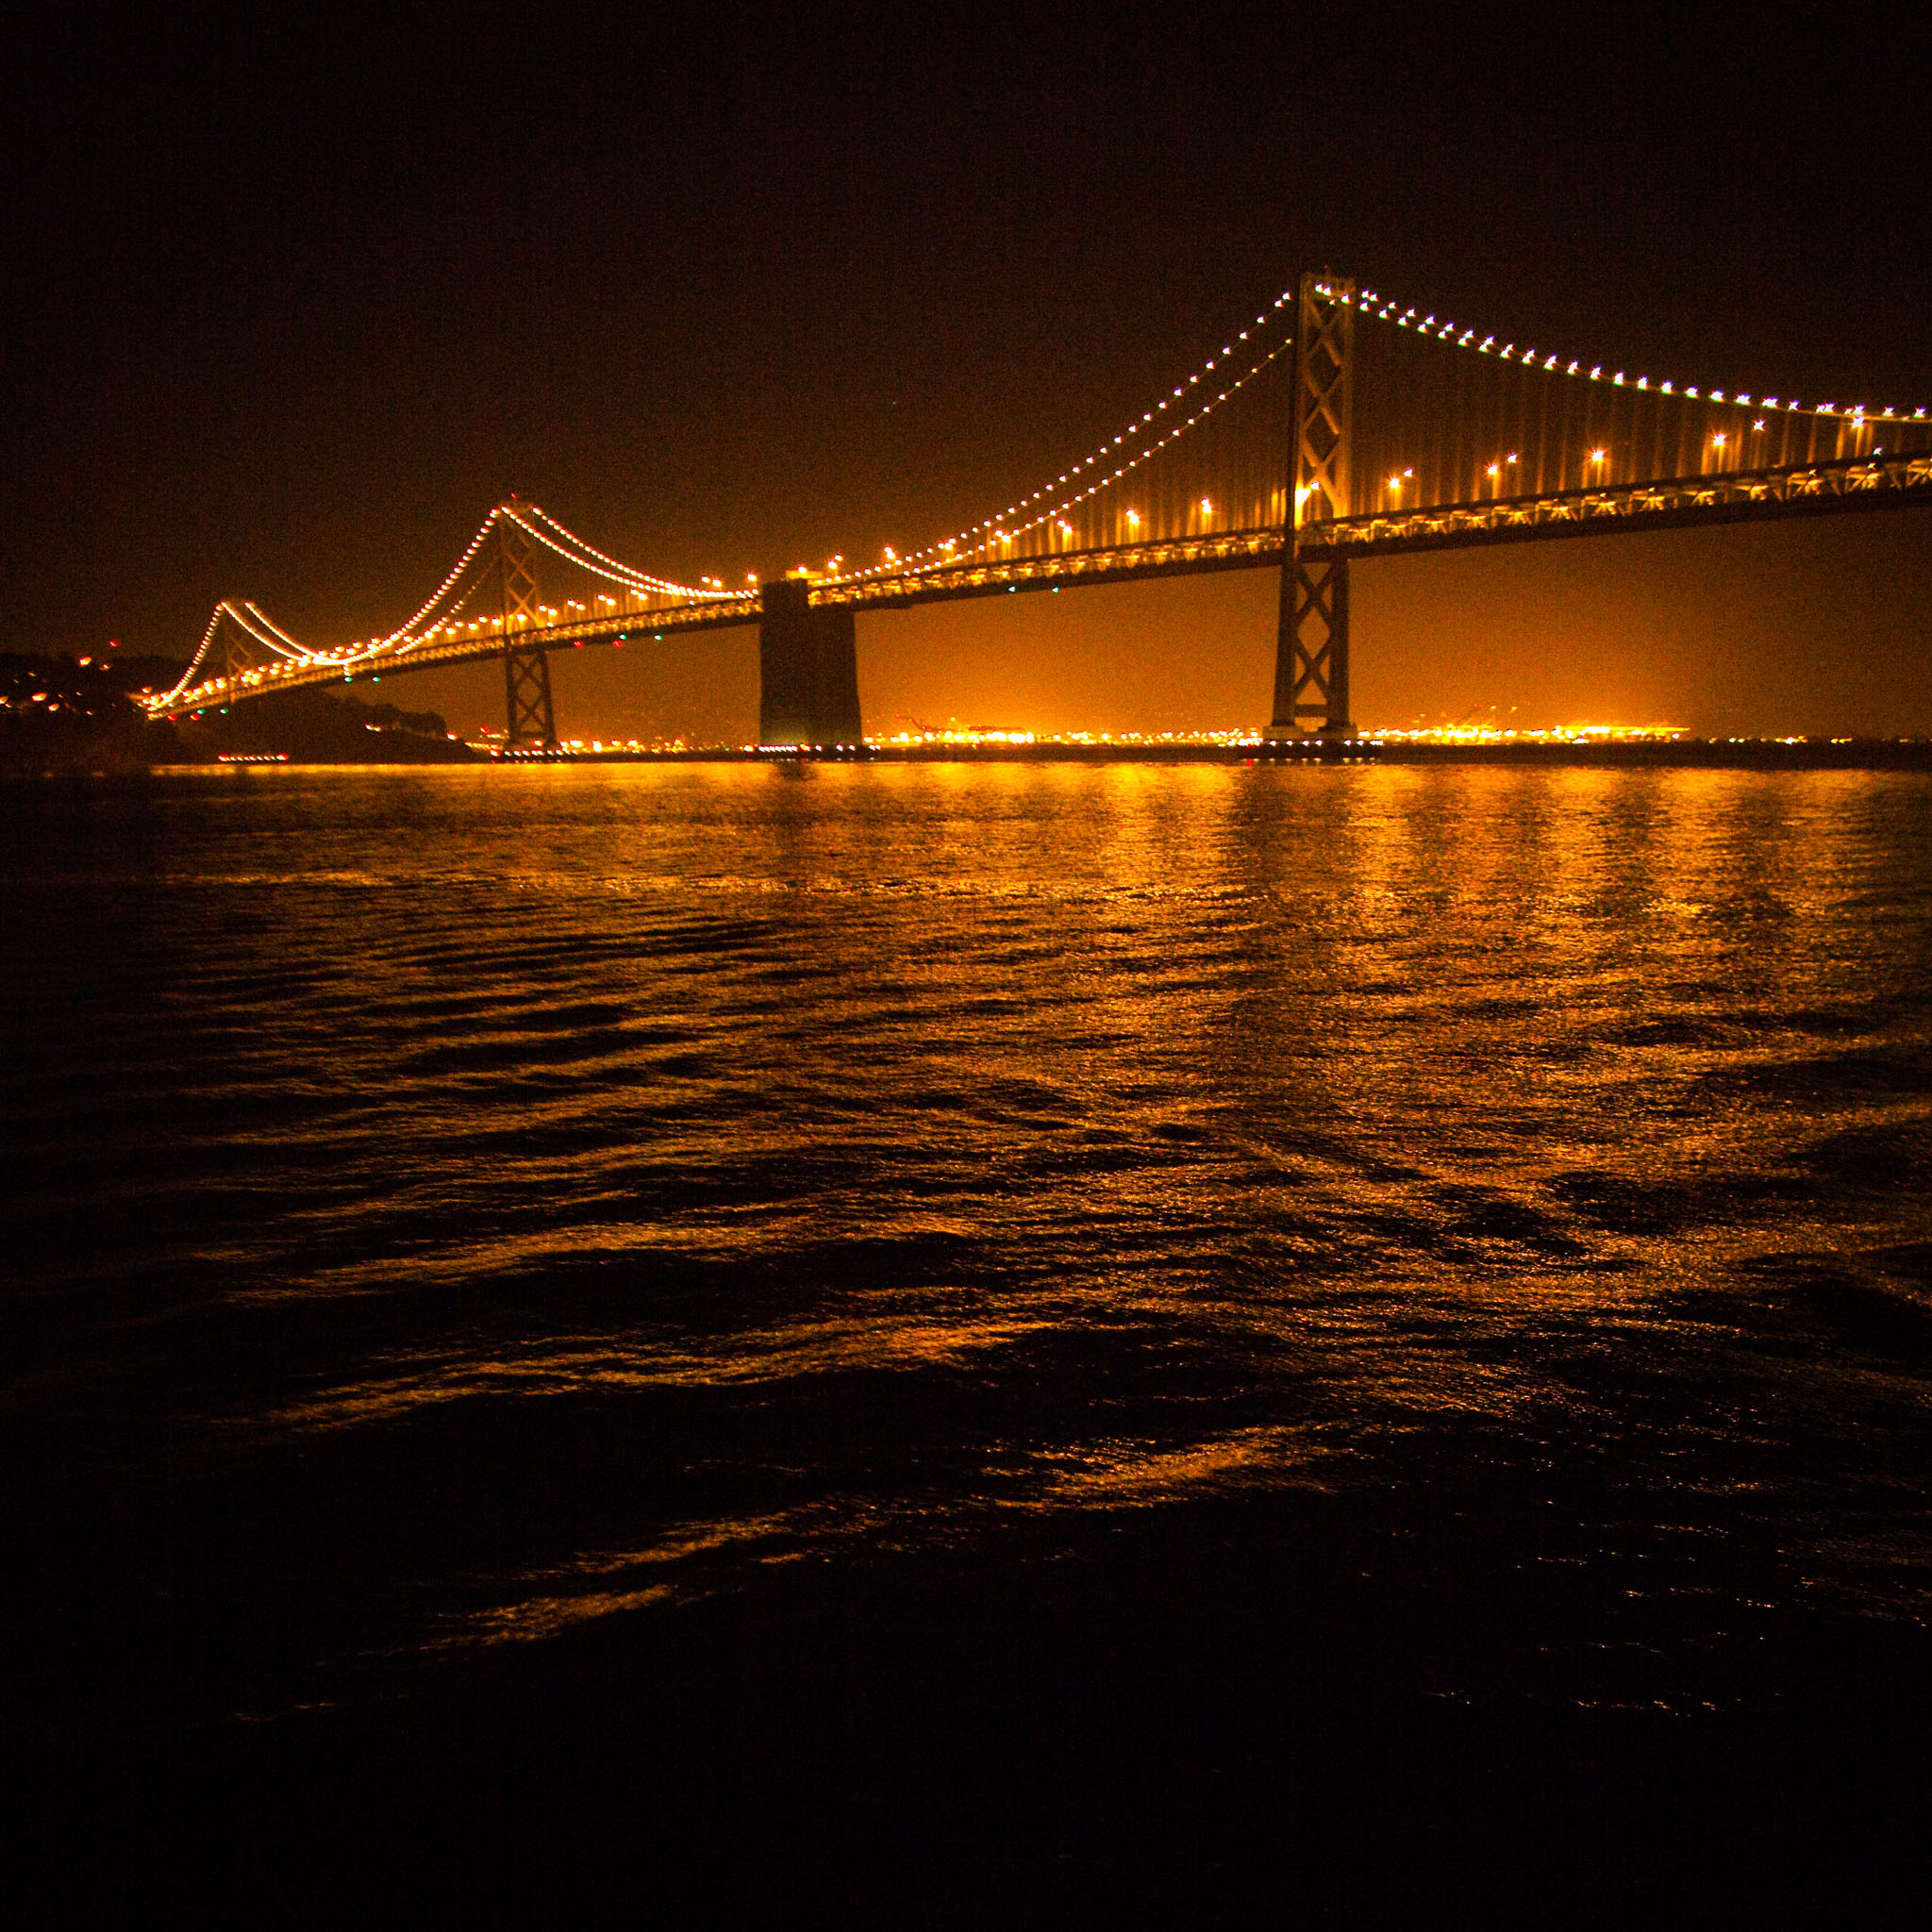 thomas hawk - ripple night time bridge ipad wallpaper